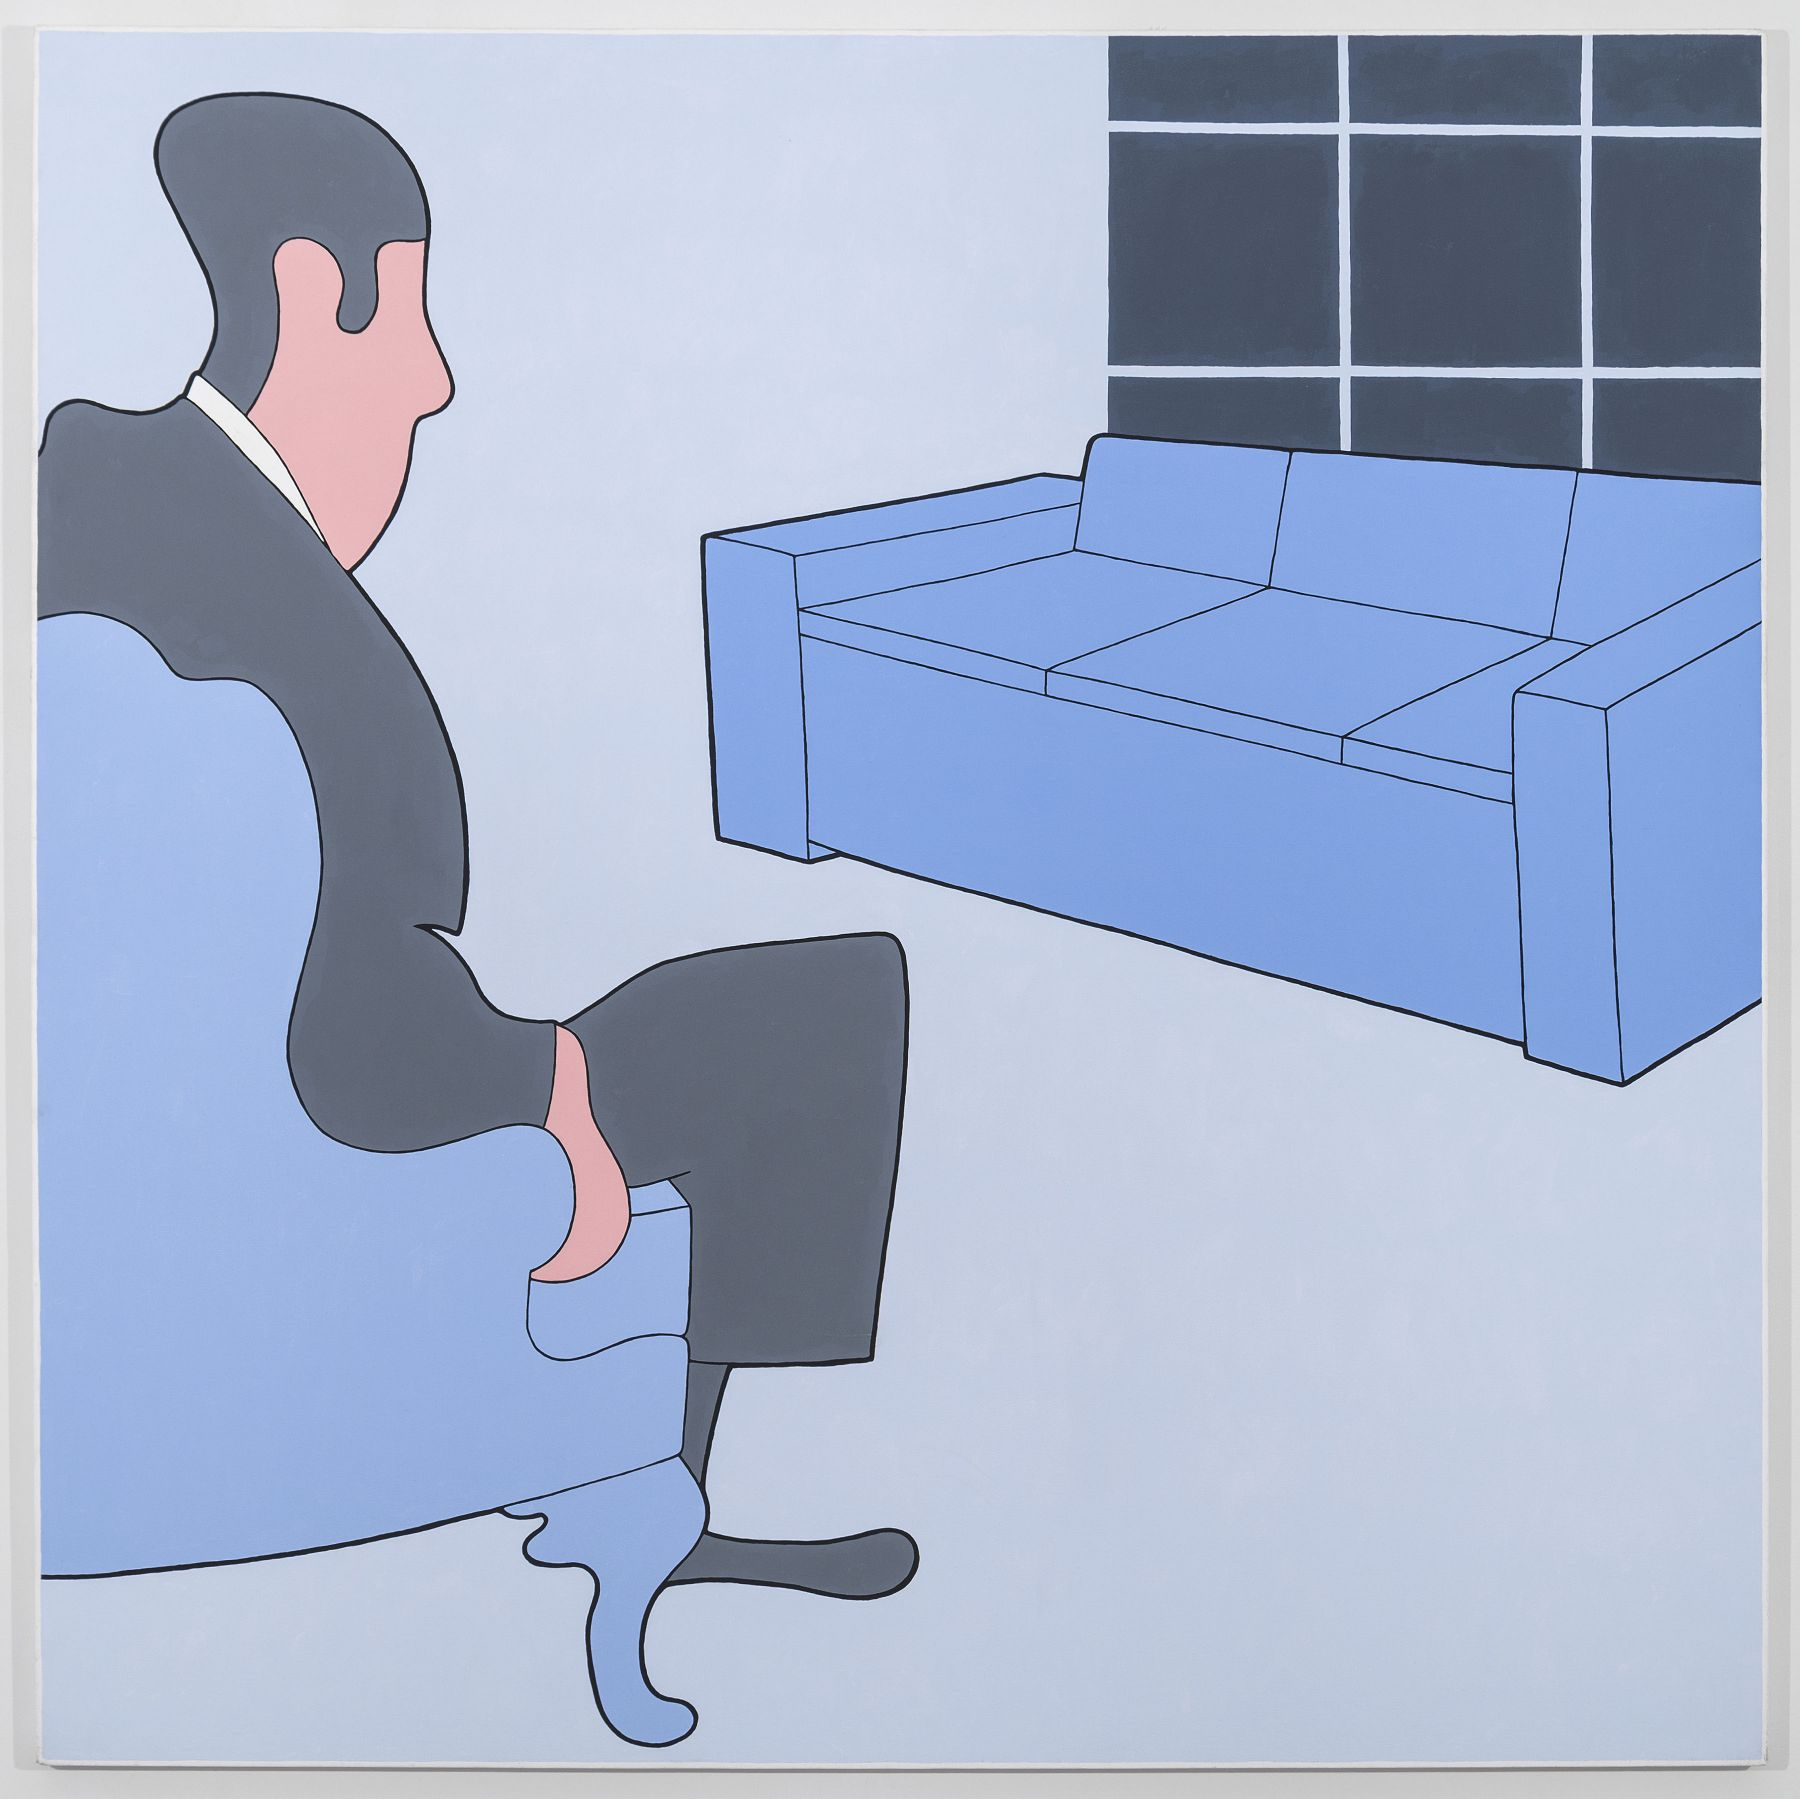 John Wesley, Untitled (Man Regarding Couch), 1987